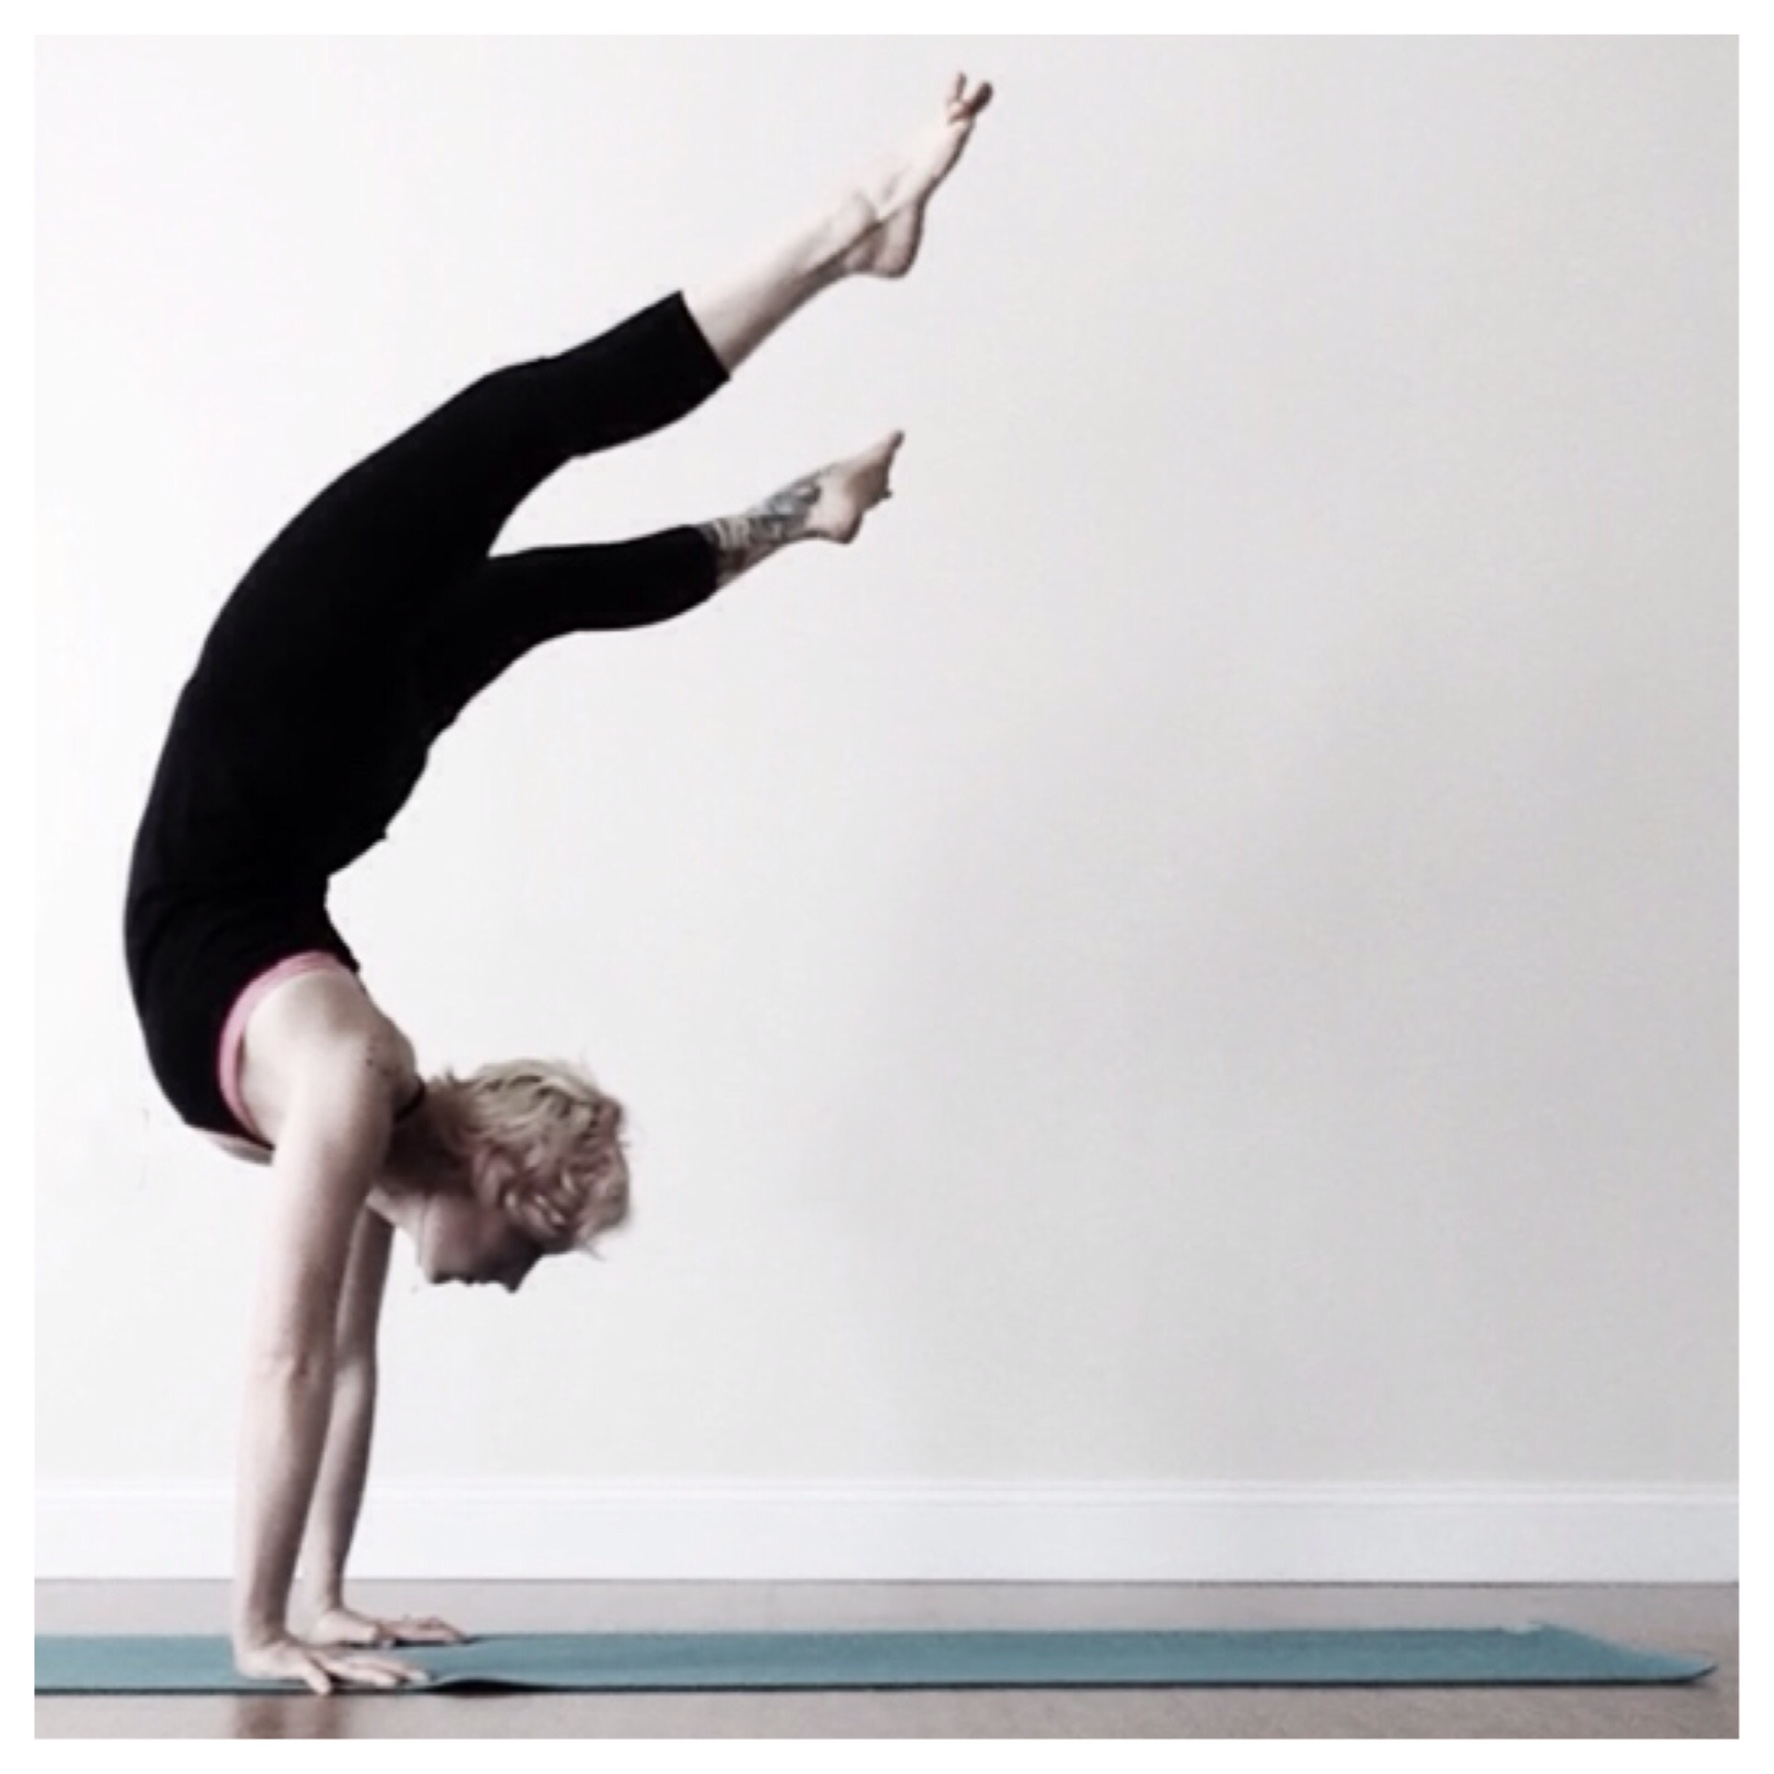 The intrepid Susan Amato, one of my yoga teachers, executing a handstand with an intentionally wonky alignment. It takes power and control to be able to master this.